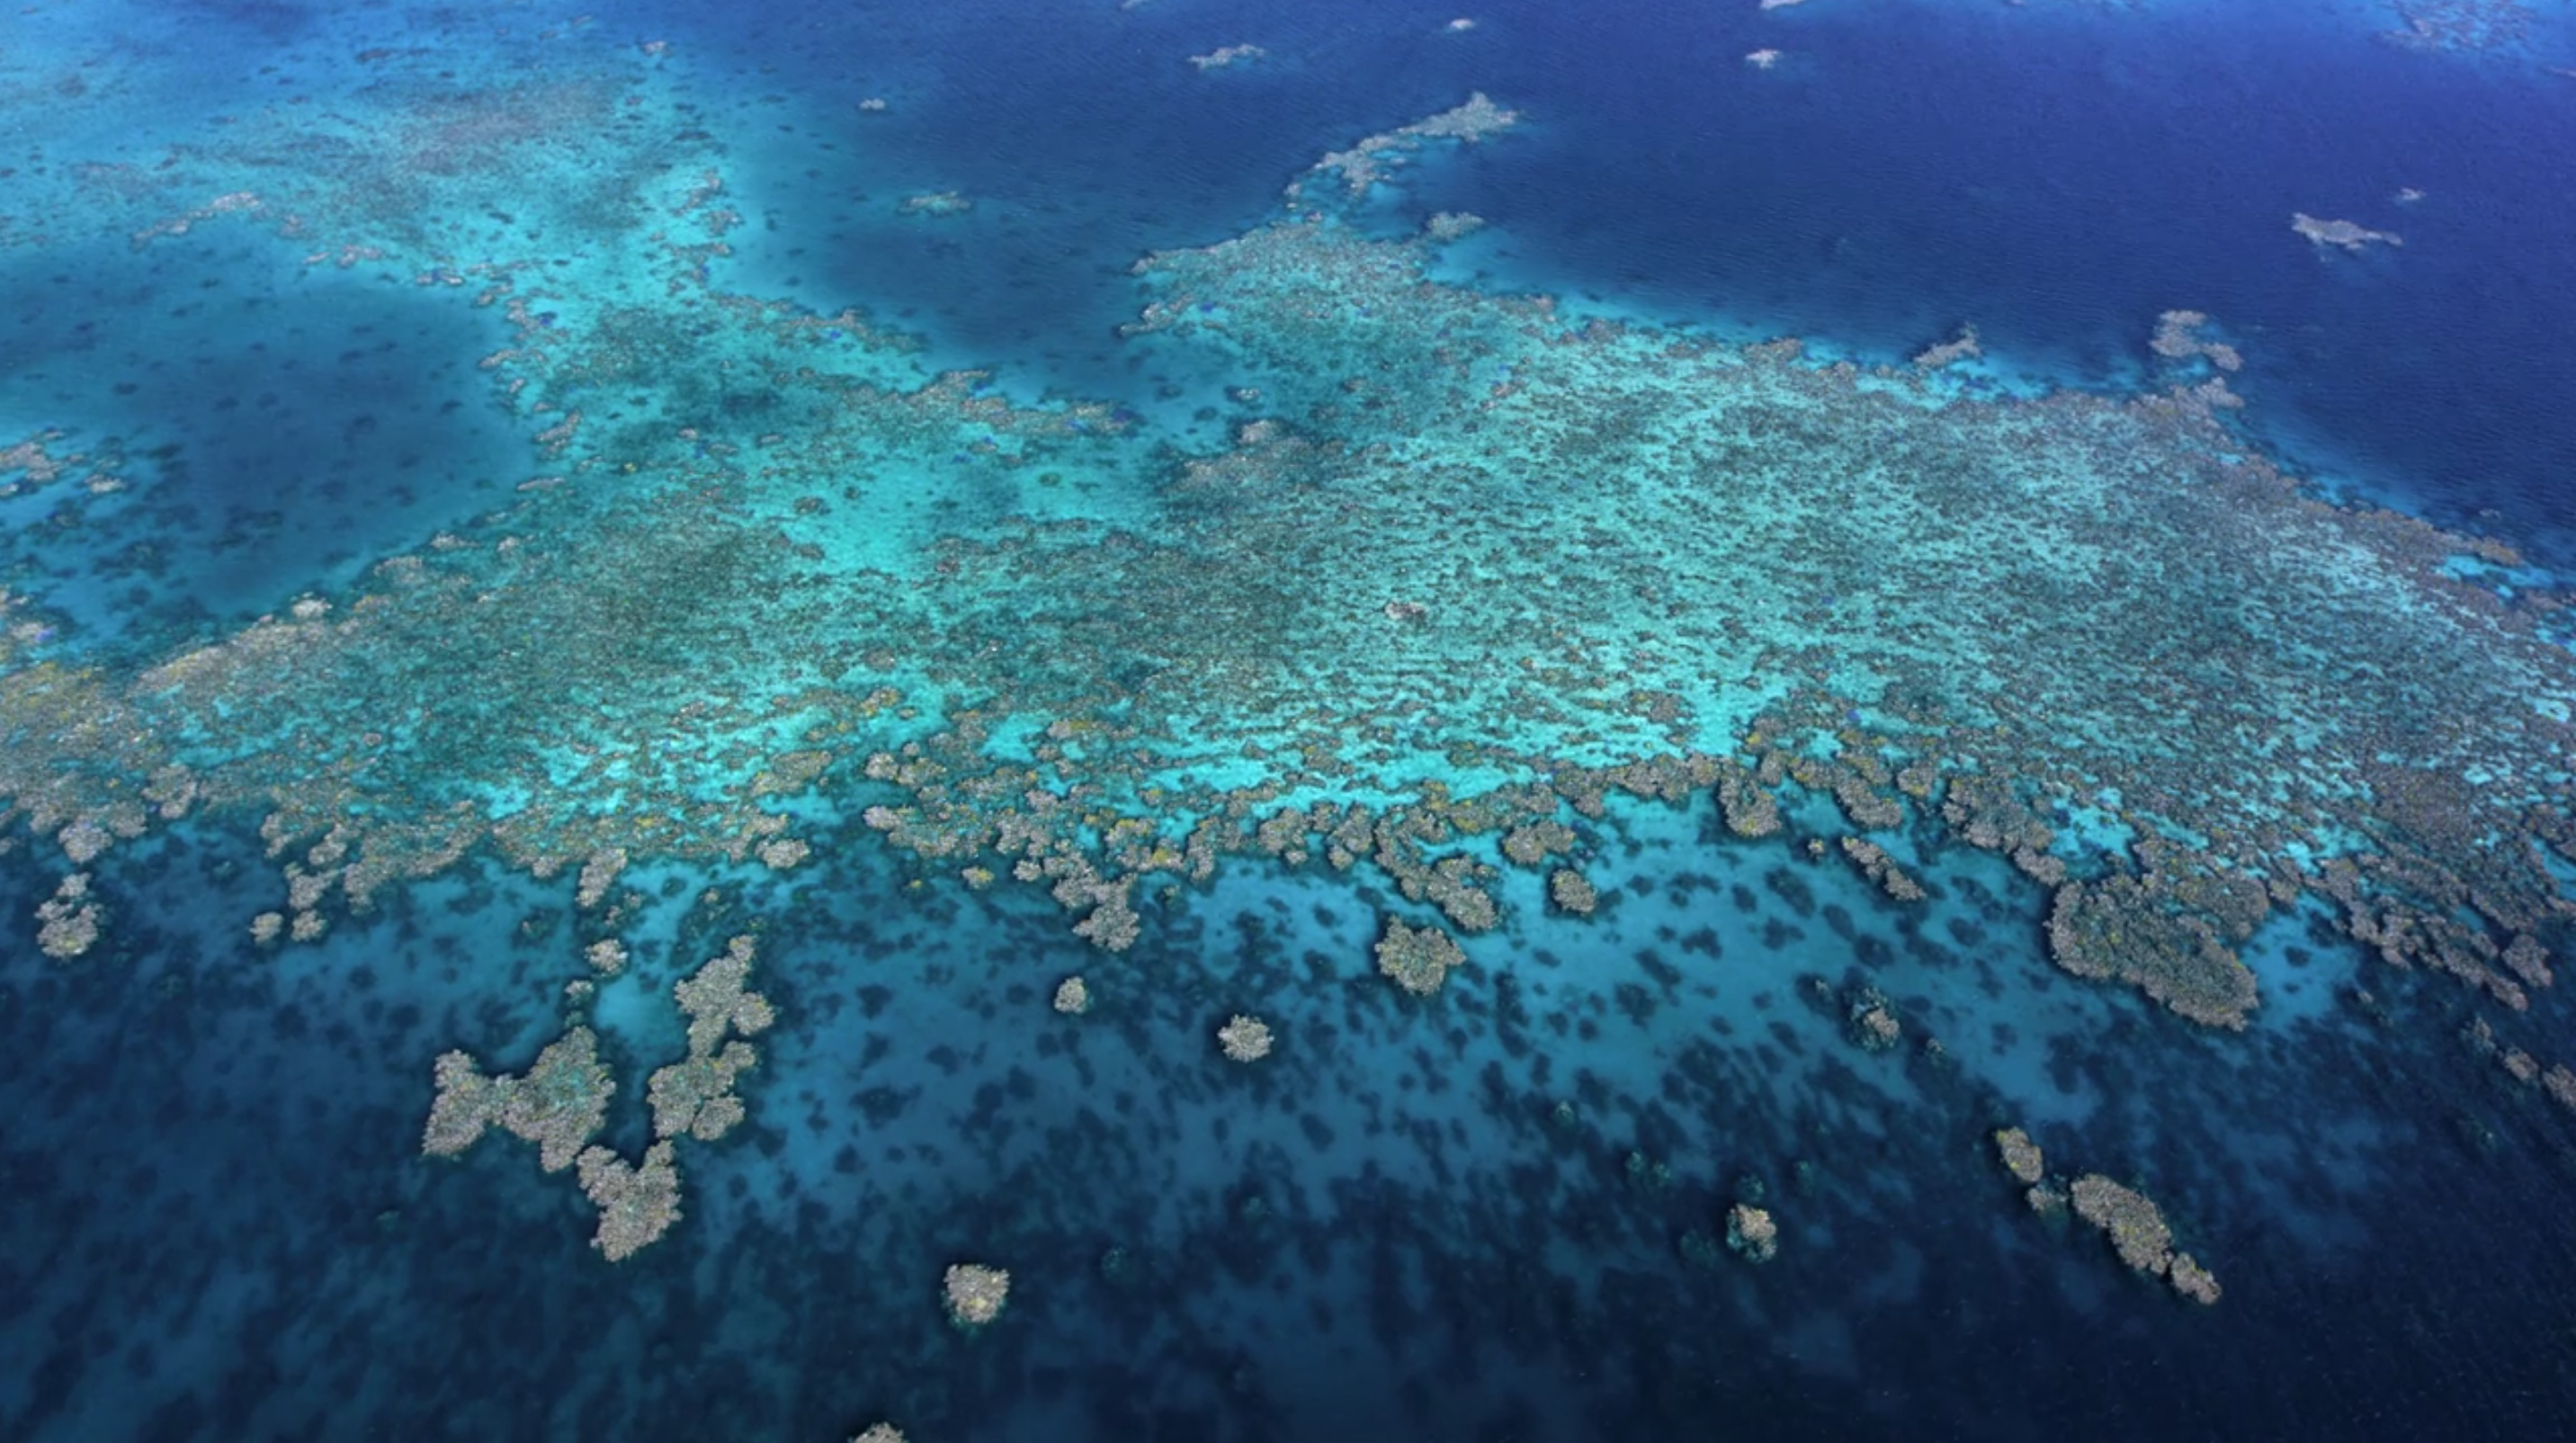 Coral reef ecosystem from the air